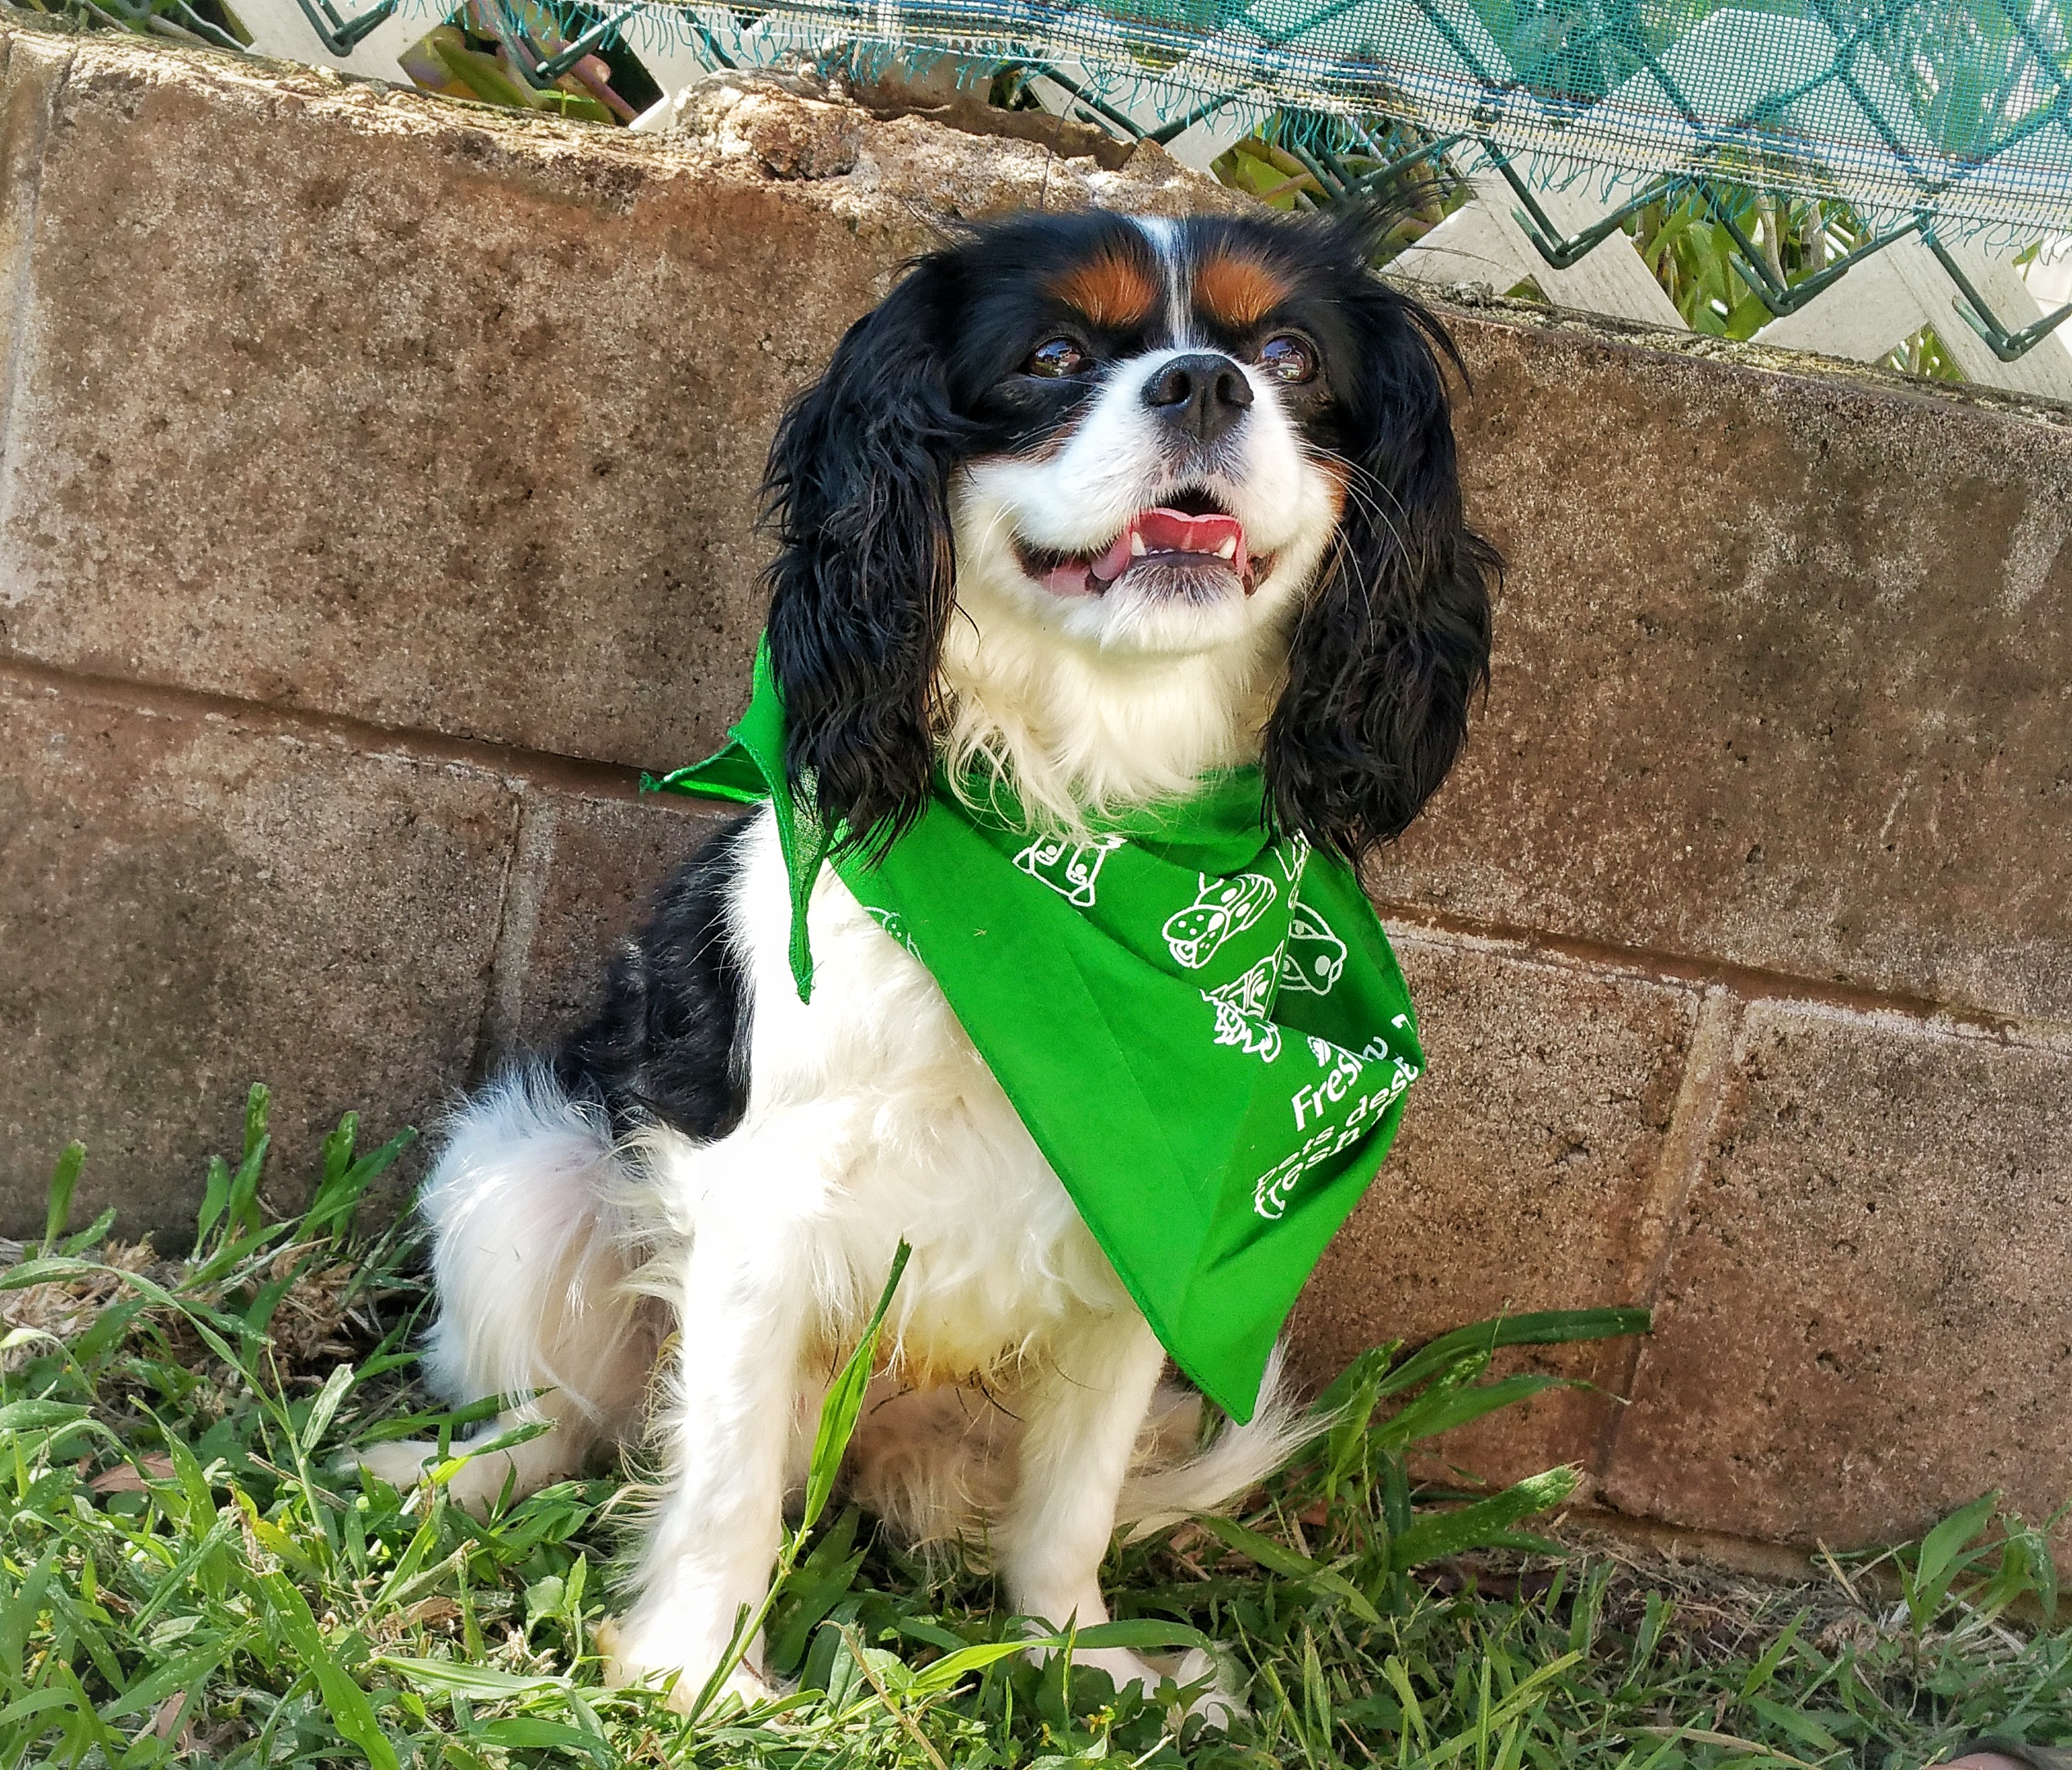 freshpet, meal time, king charles cavalier spaniel, dog, cat, animals, family fur babies, pet food, pet meals, freshpet dog food, dog food, review, eating, healthy meal,